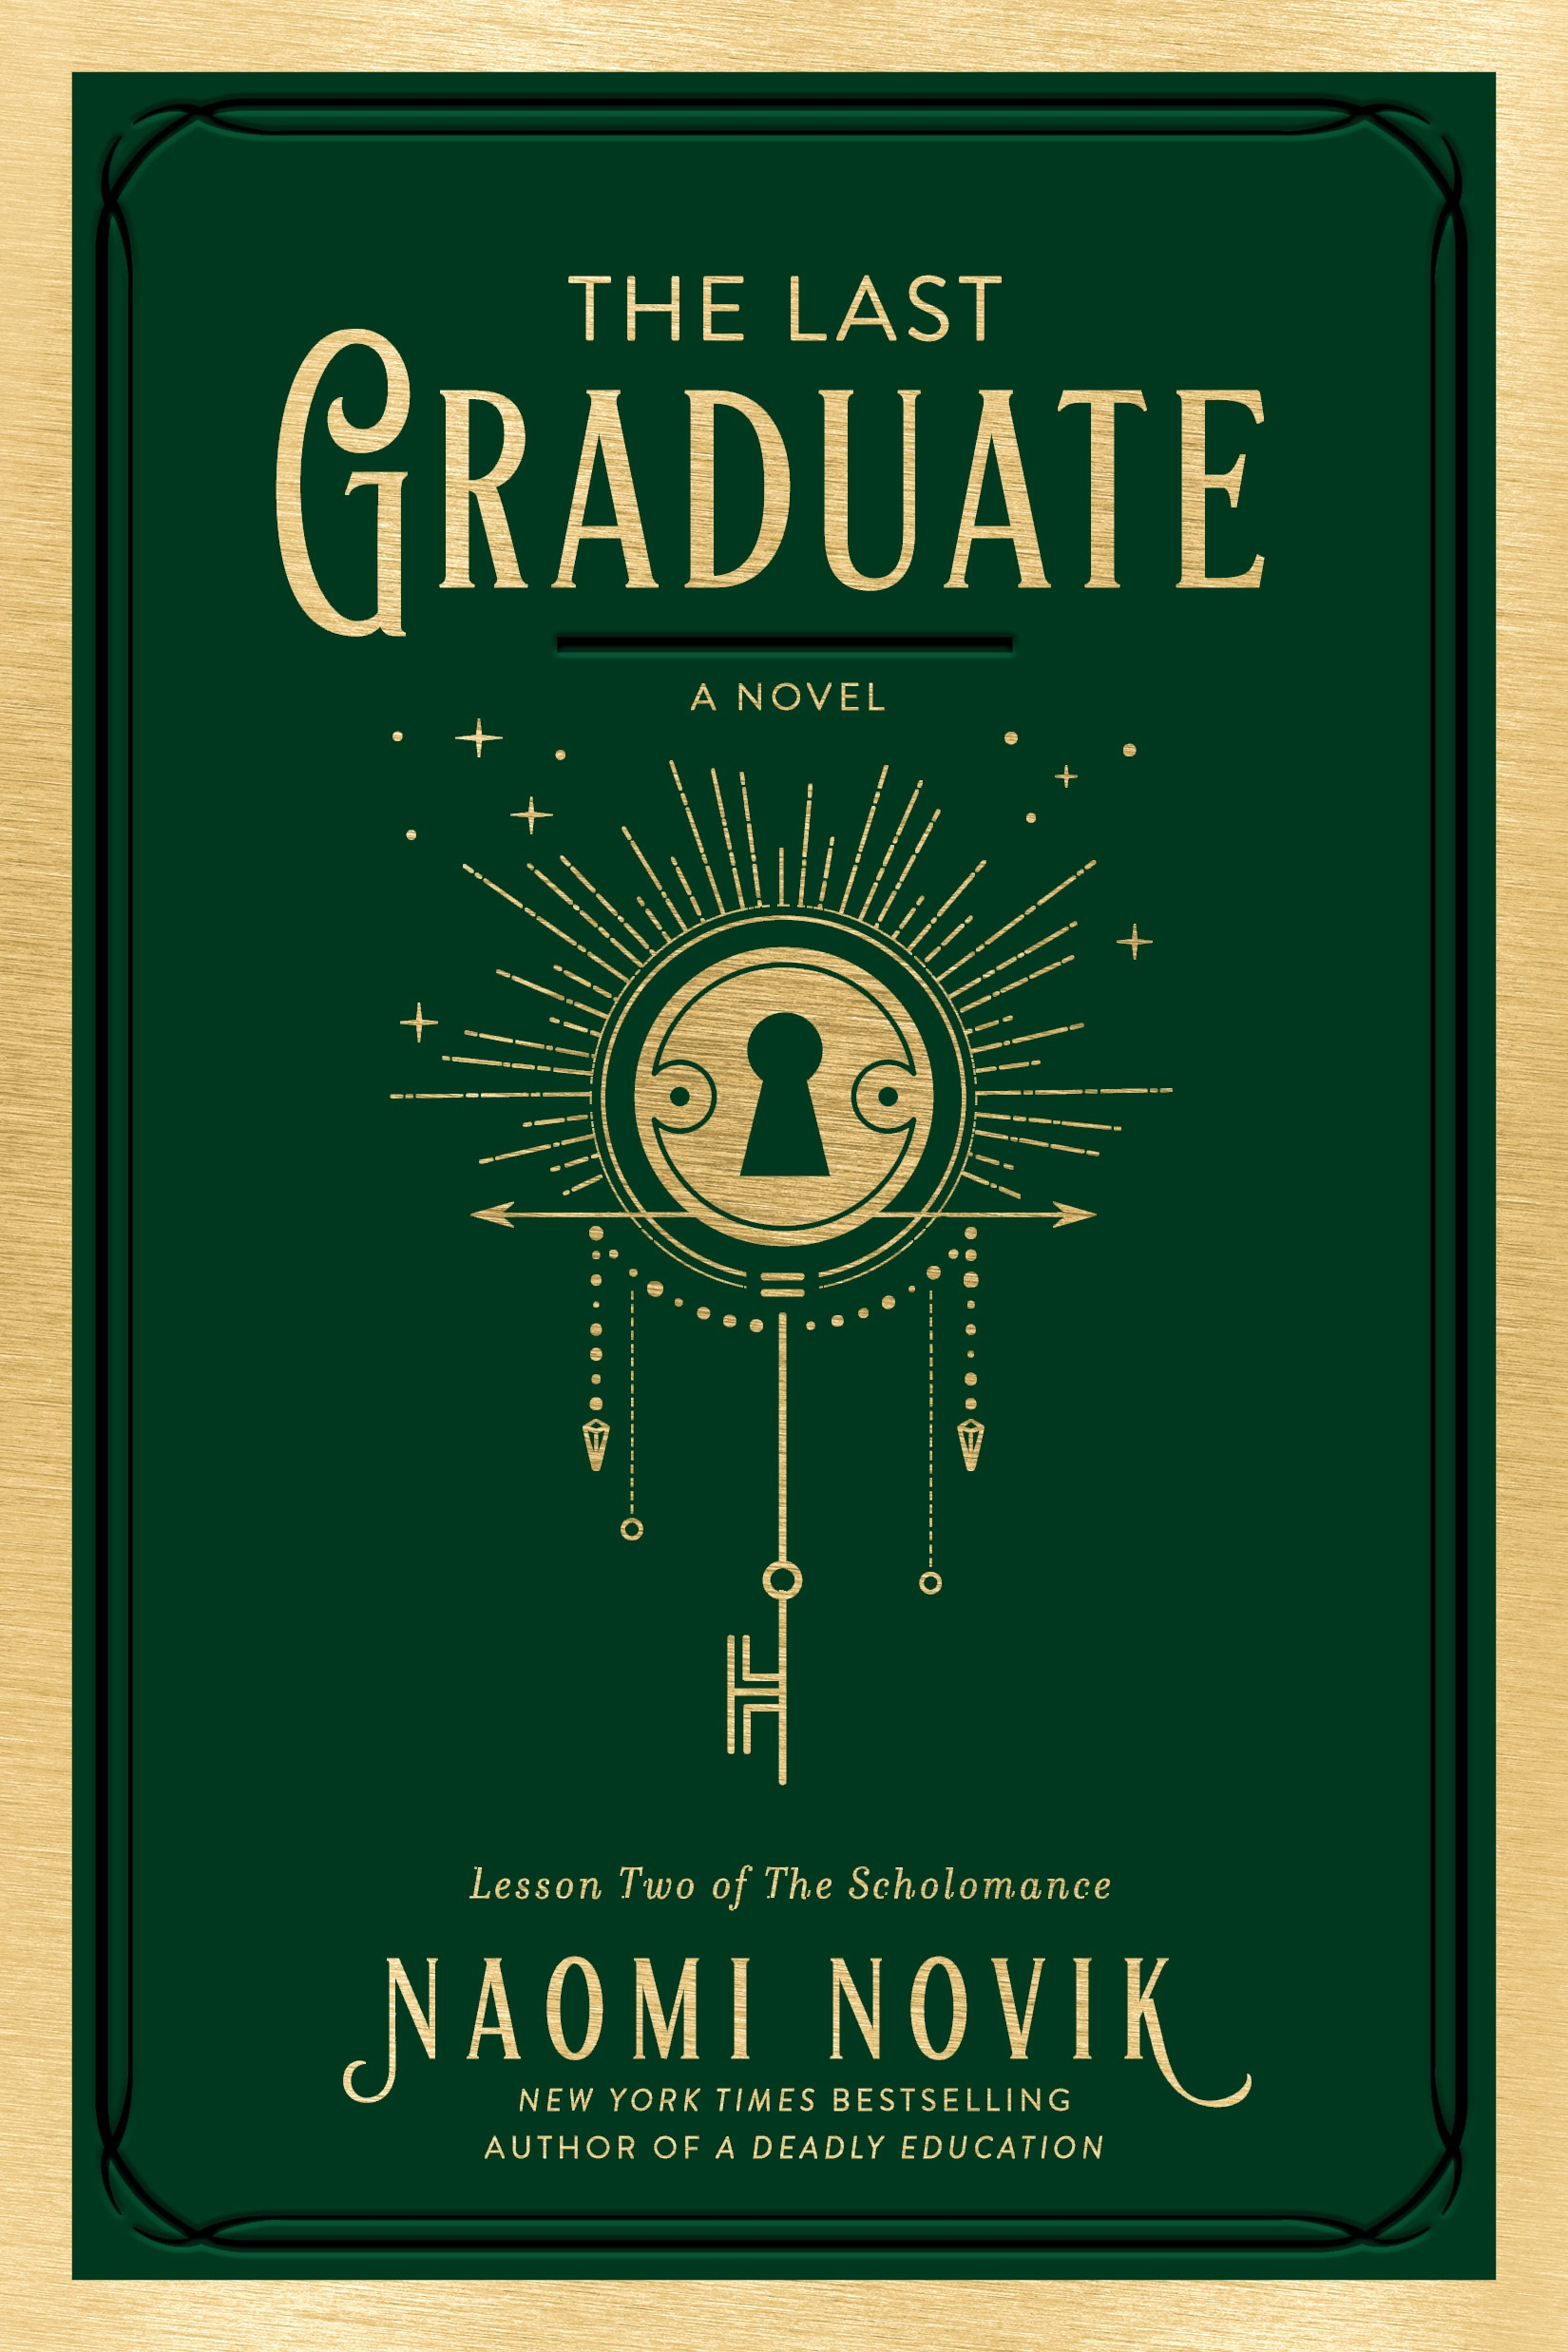 Cover art for The Last Graduate by Naomi Novik, a green background with an elaborate keyhole design in gold